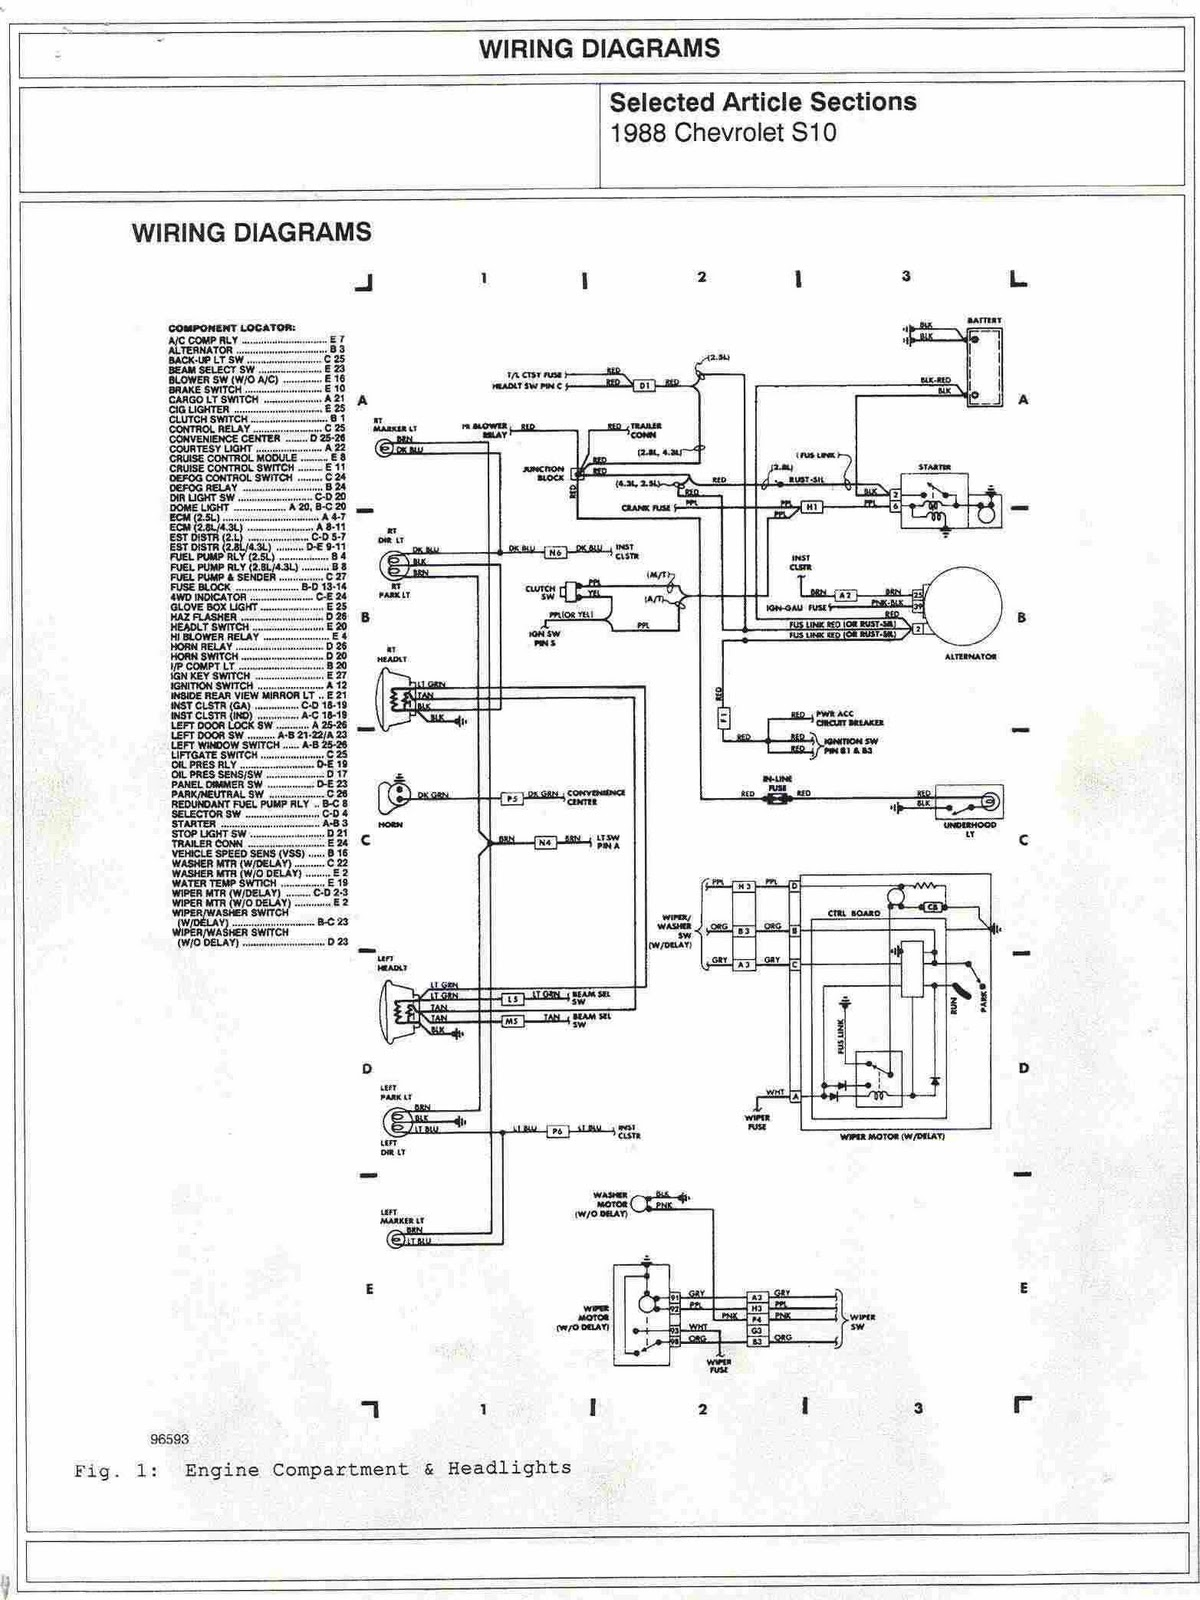 1988+Chevrolet+S10+Engine+Compartment+and+Headlights+Wiring+Diagrams 1988 chevy suburban fuse box diagram wiring diagram simonand 1990 K1500 Cheyenne at mifinder.co